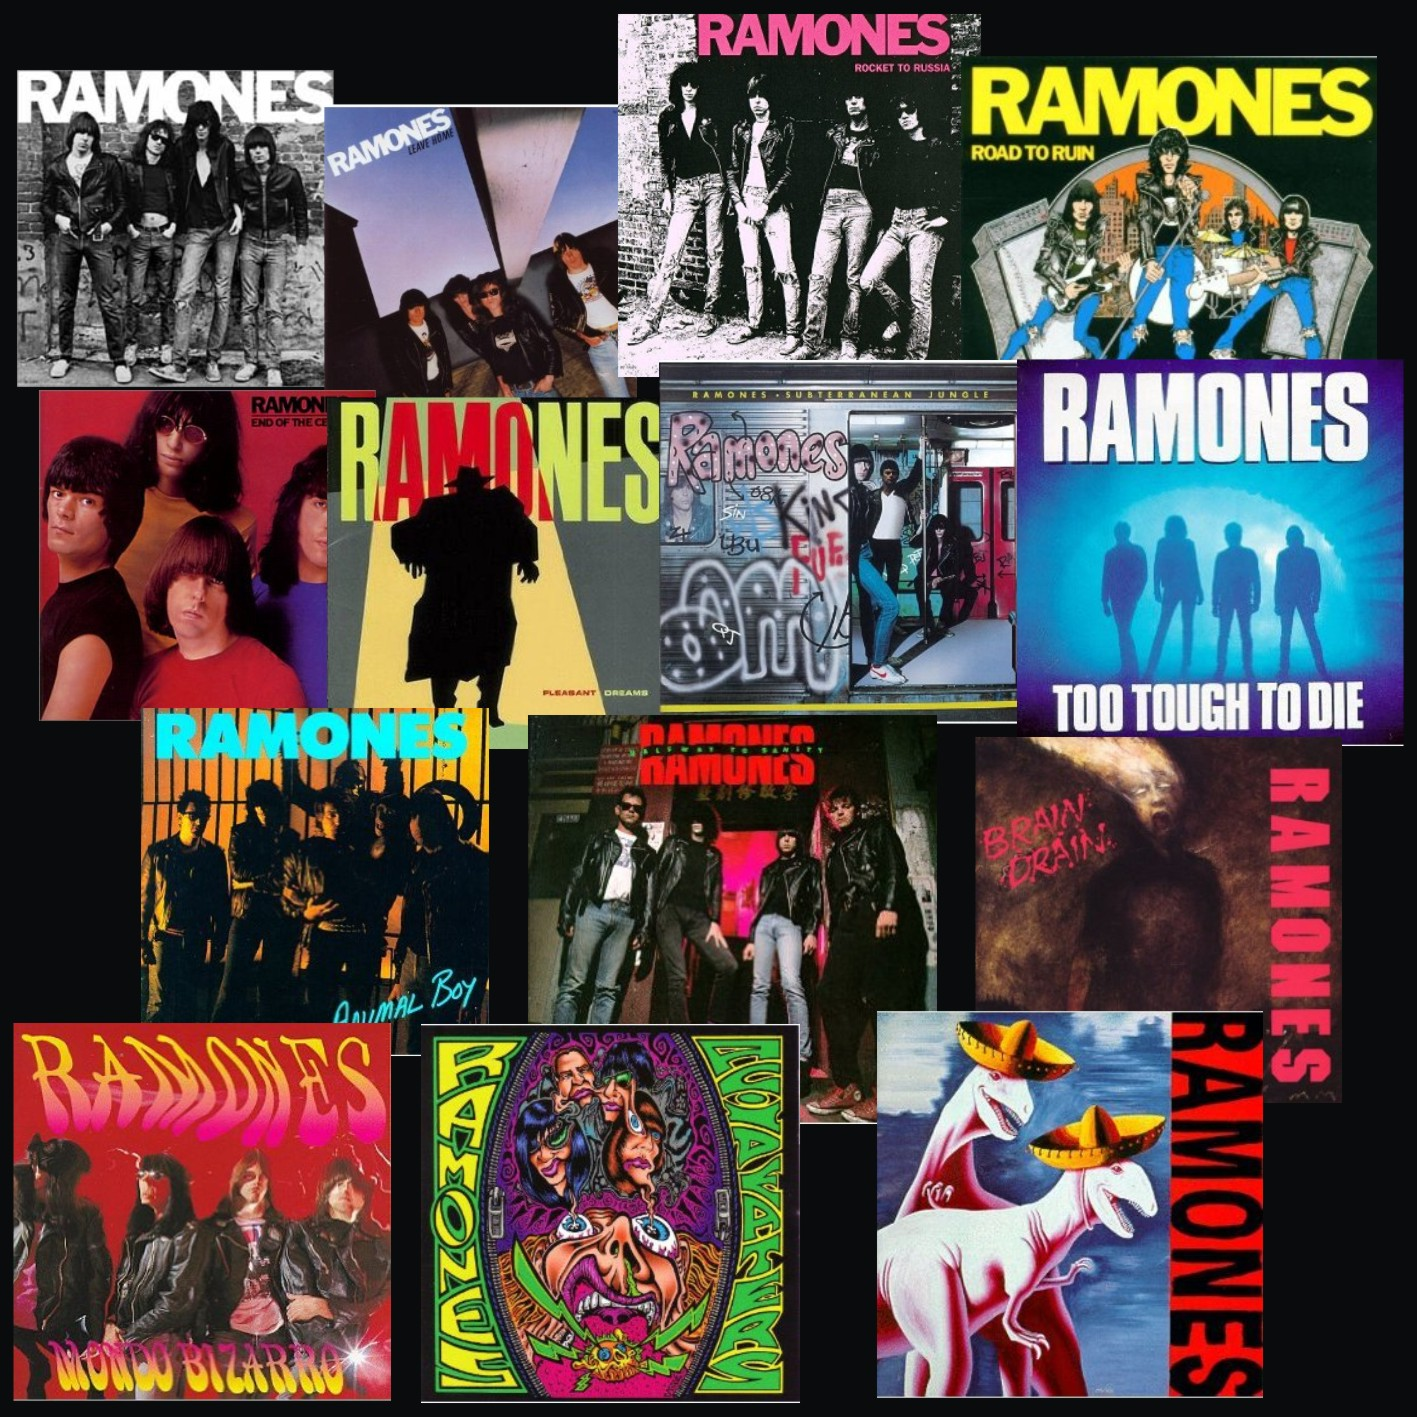 Stathie: THE RAMONES DISCOGRAPHY & VIDEOS